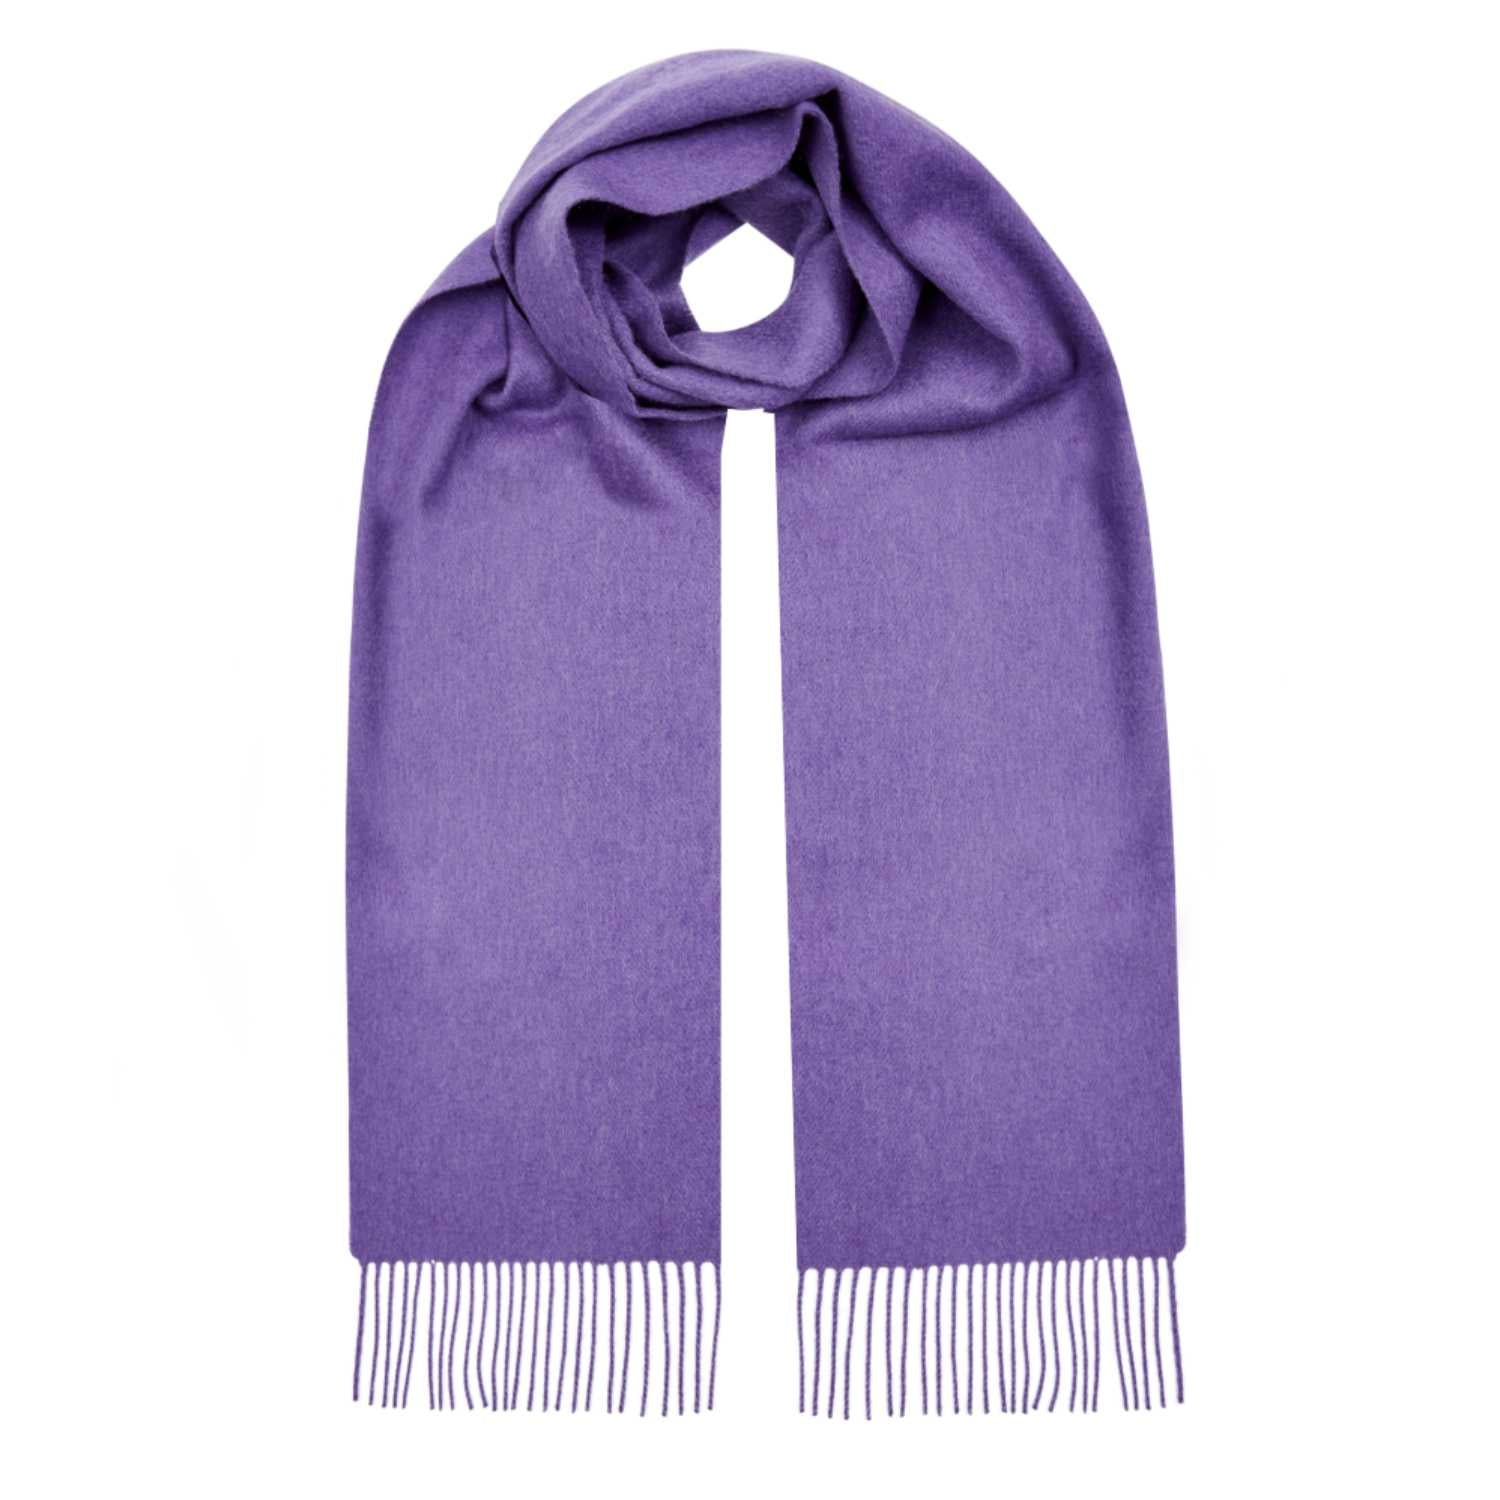 Lomond Cashmere | Violet Purple | Plain Cashmere Scarf | Shop at The Cashmere Choice | London